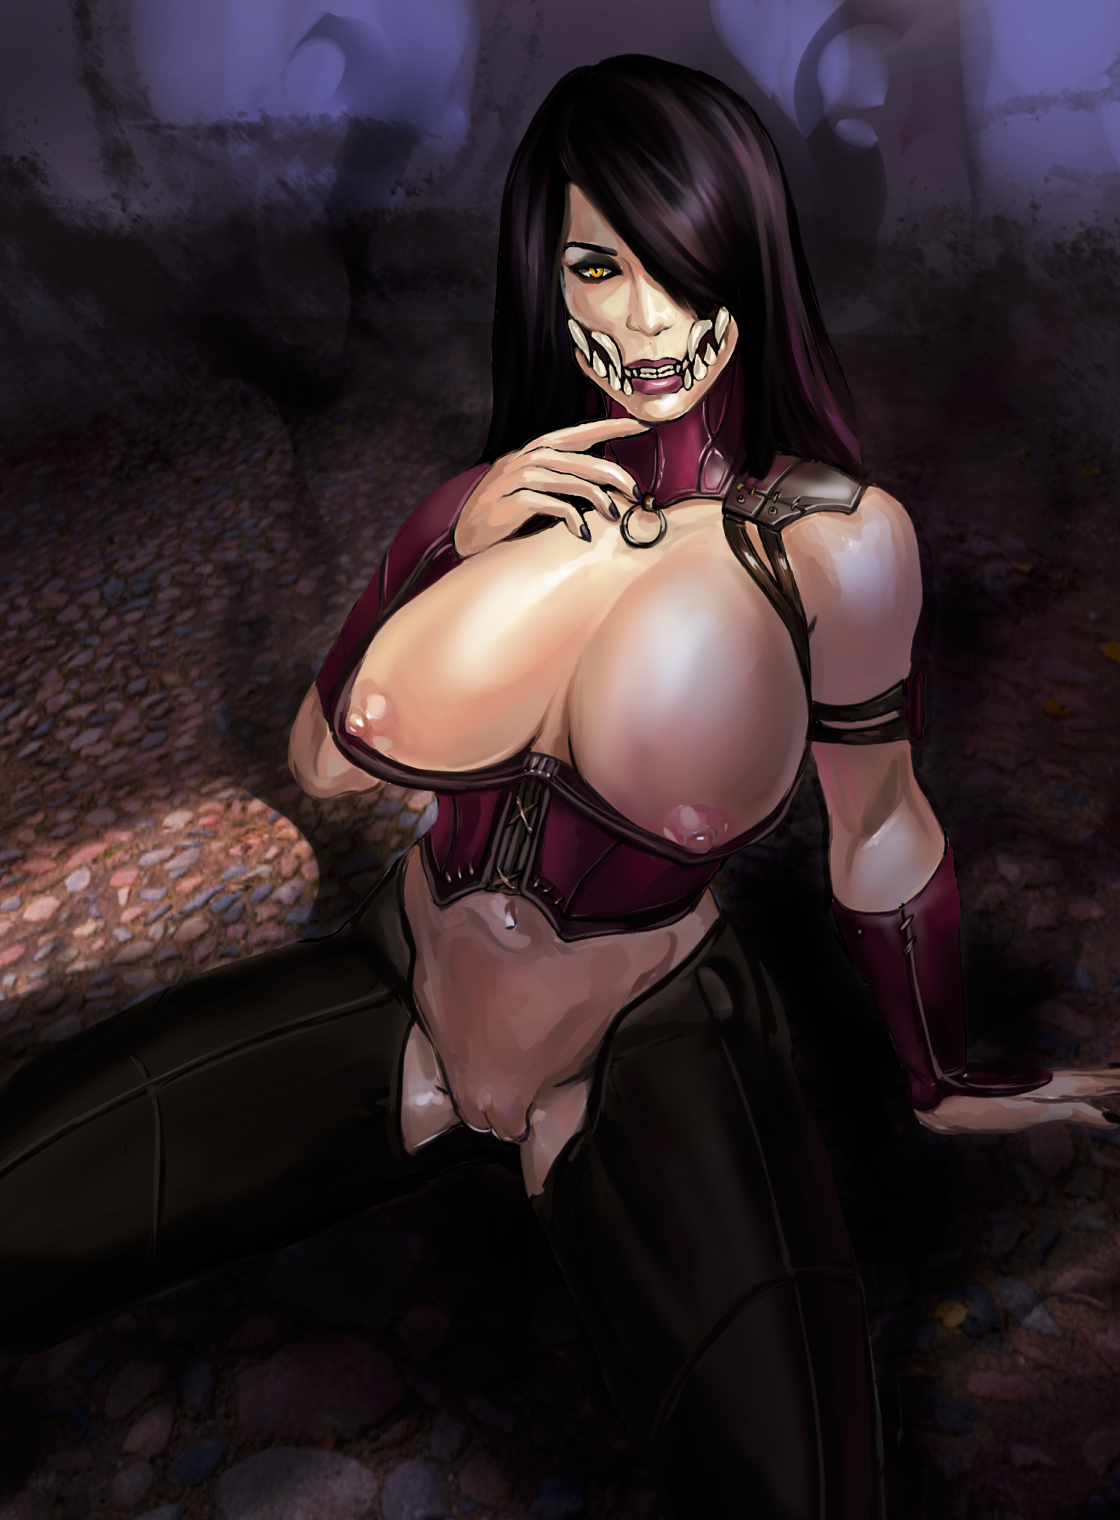 Final, sorry, Mortal kombat tits xxx the ideal